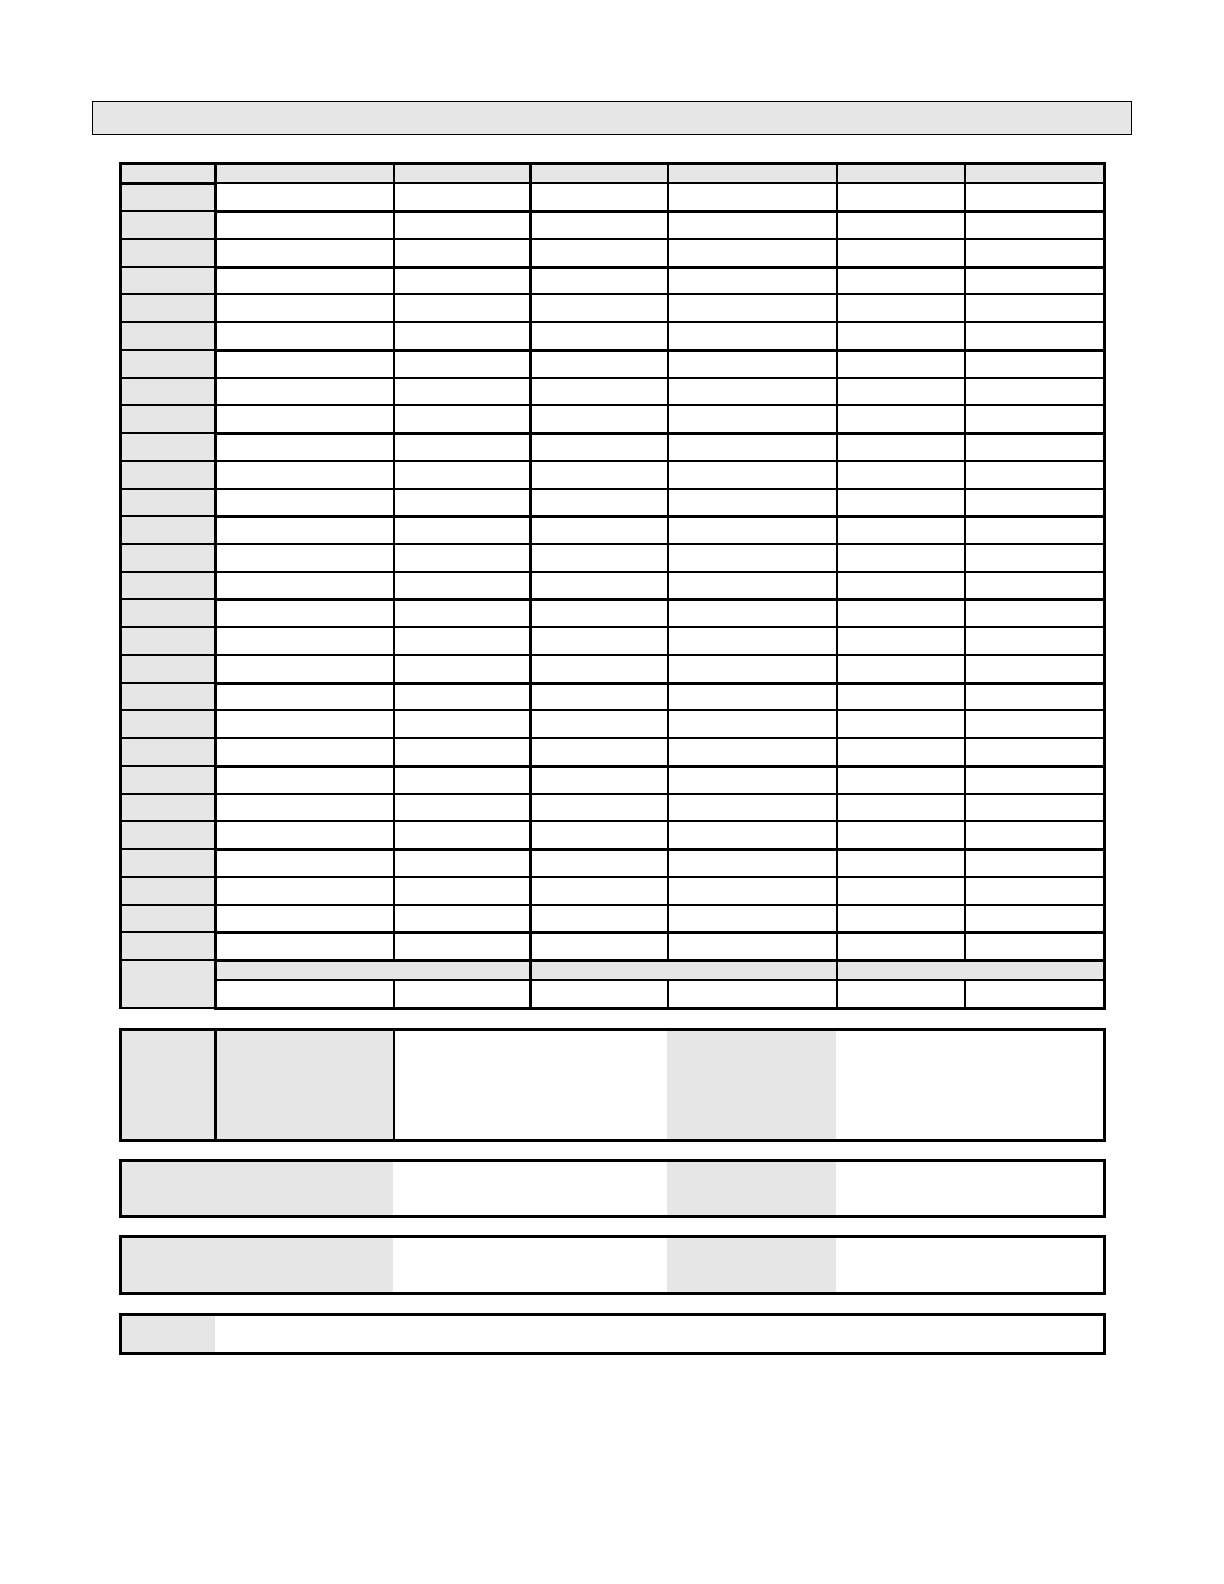 Blank Canasta Score Sheet Free Download – Canasta Score Sheet